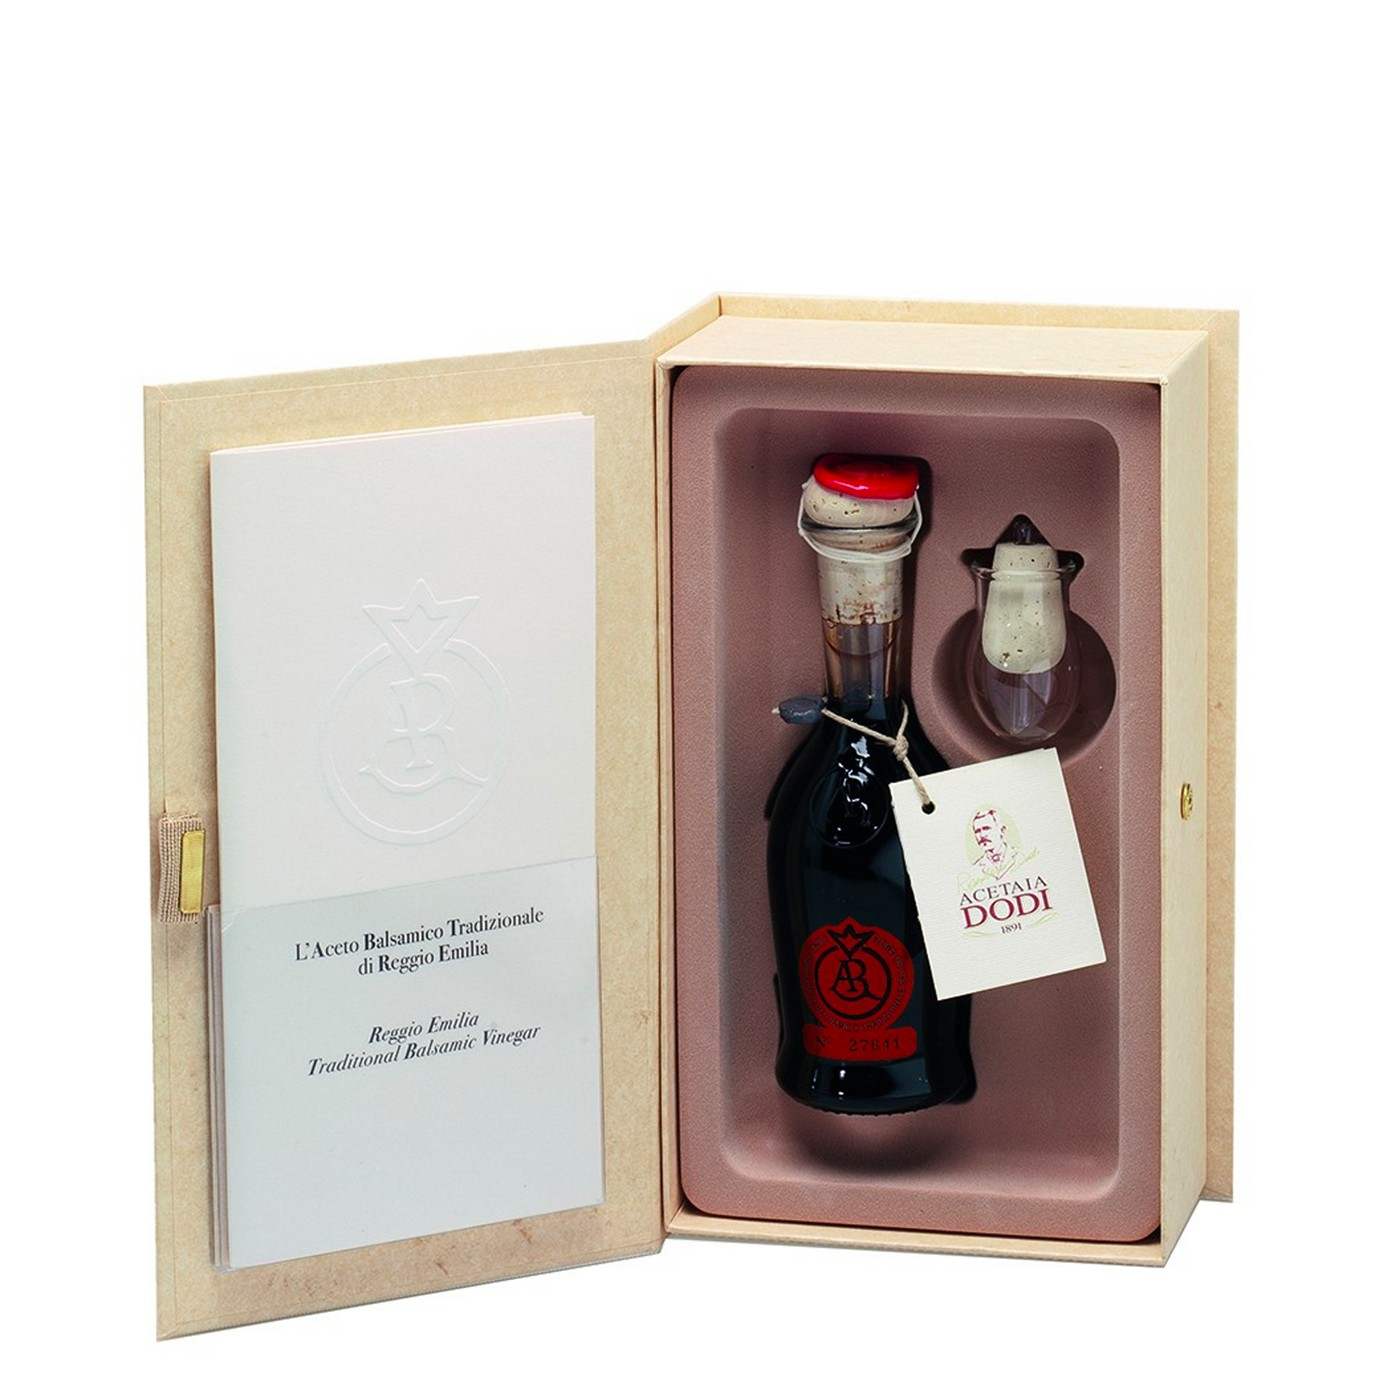 12-Year-Aged Balsamic Vinegar from Reggio-Emilia